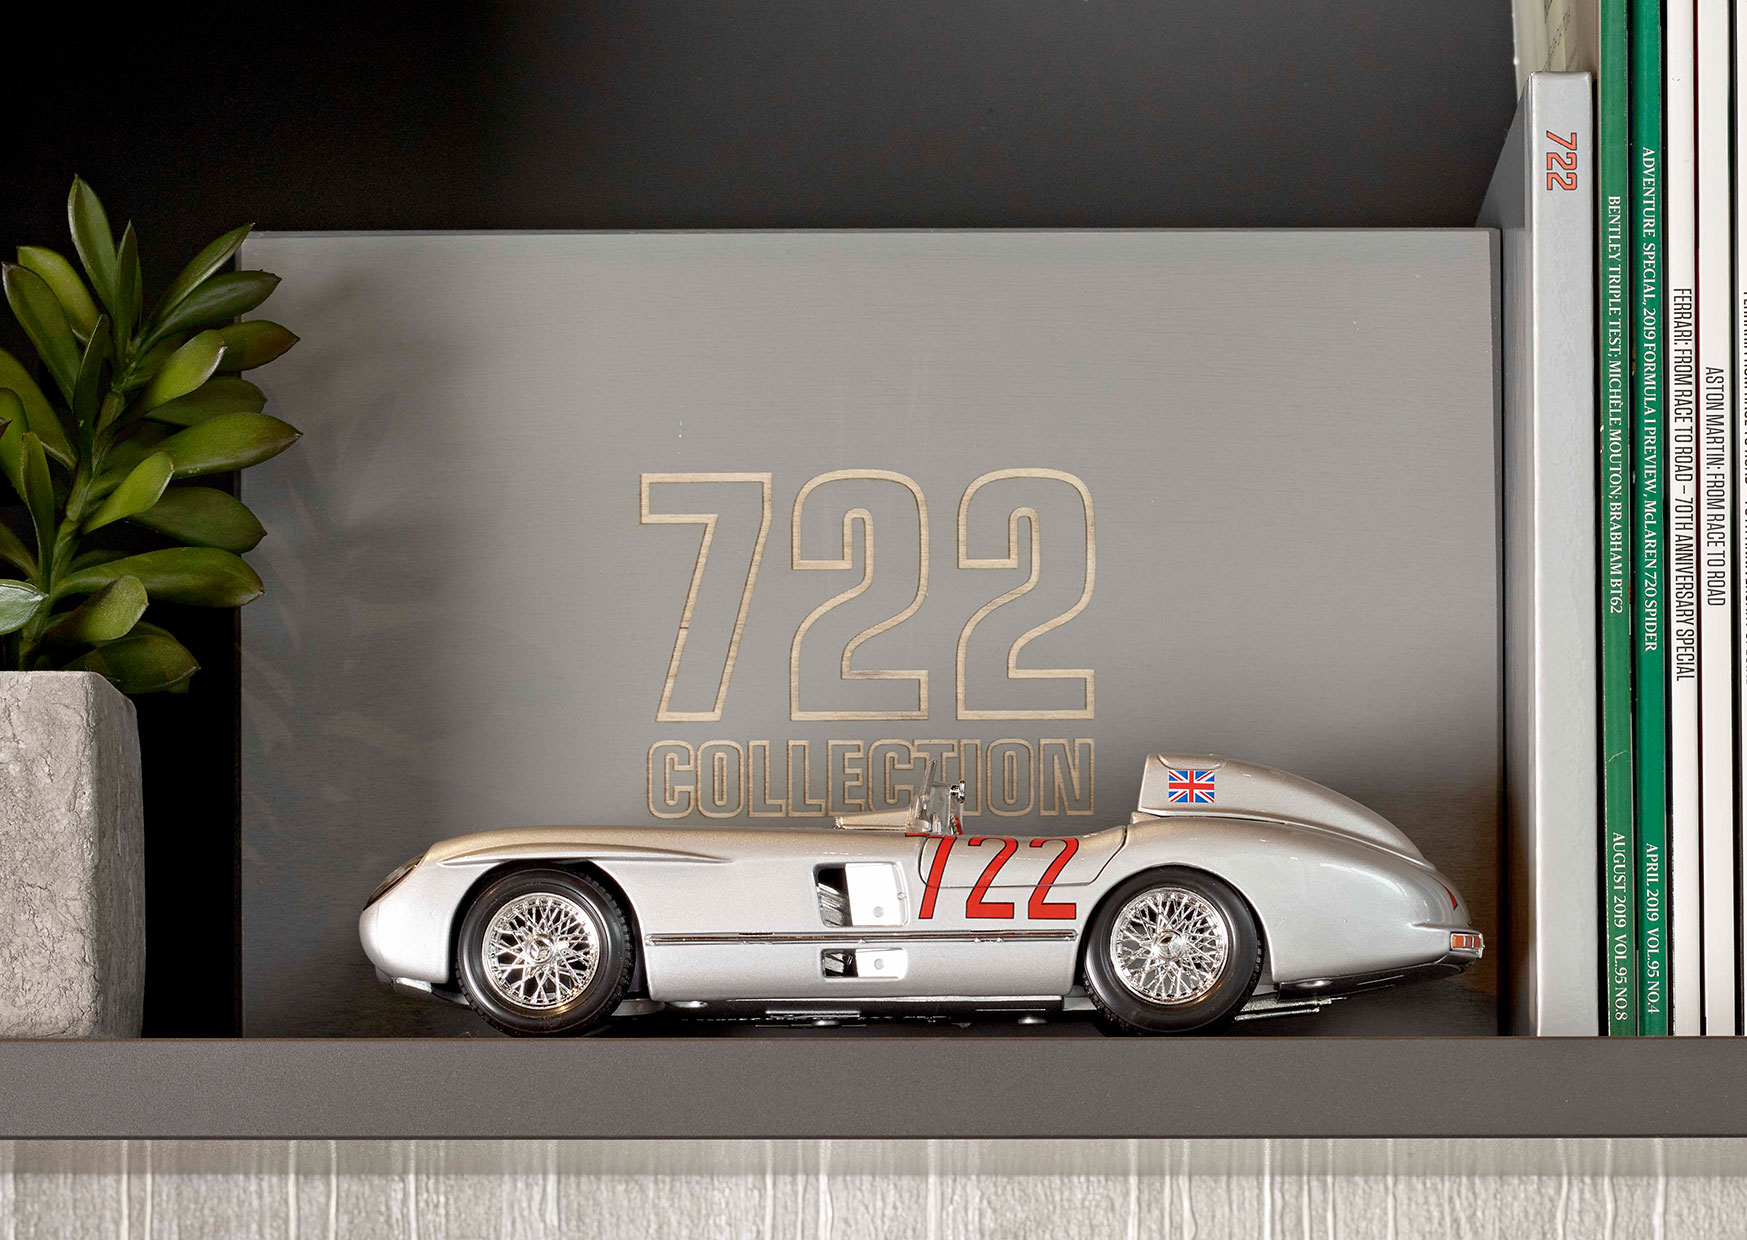 Sir Stirling Moss Legendary 722 signed box set